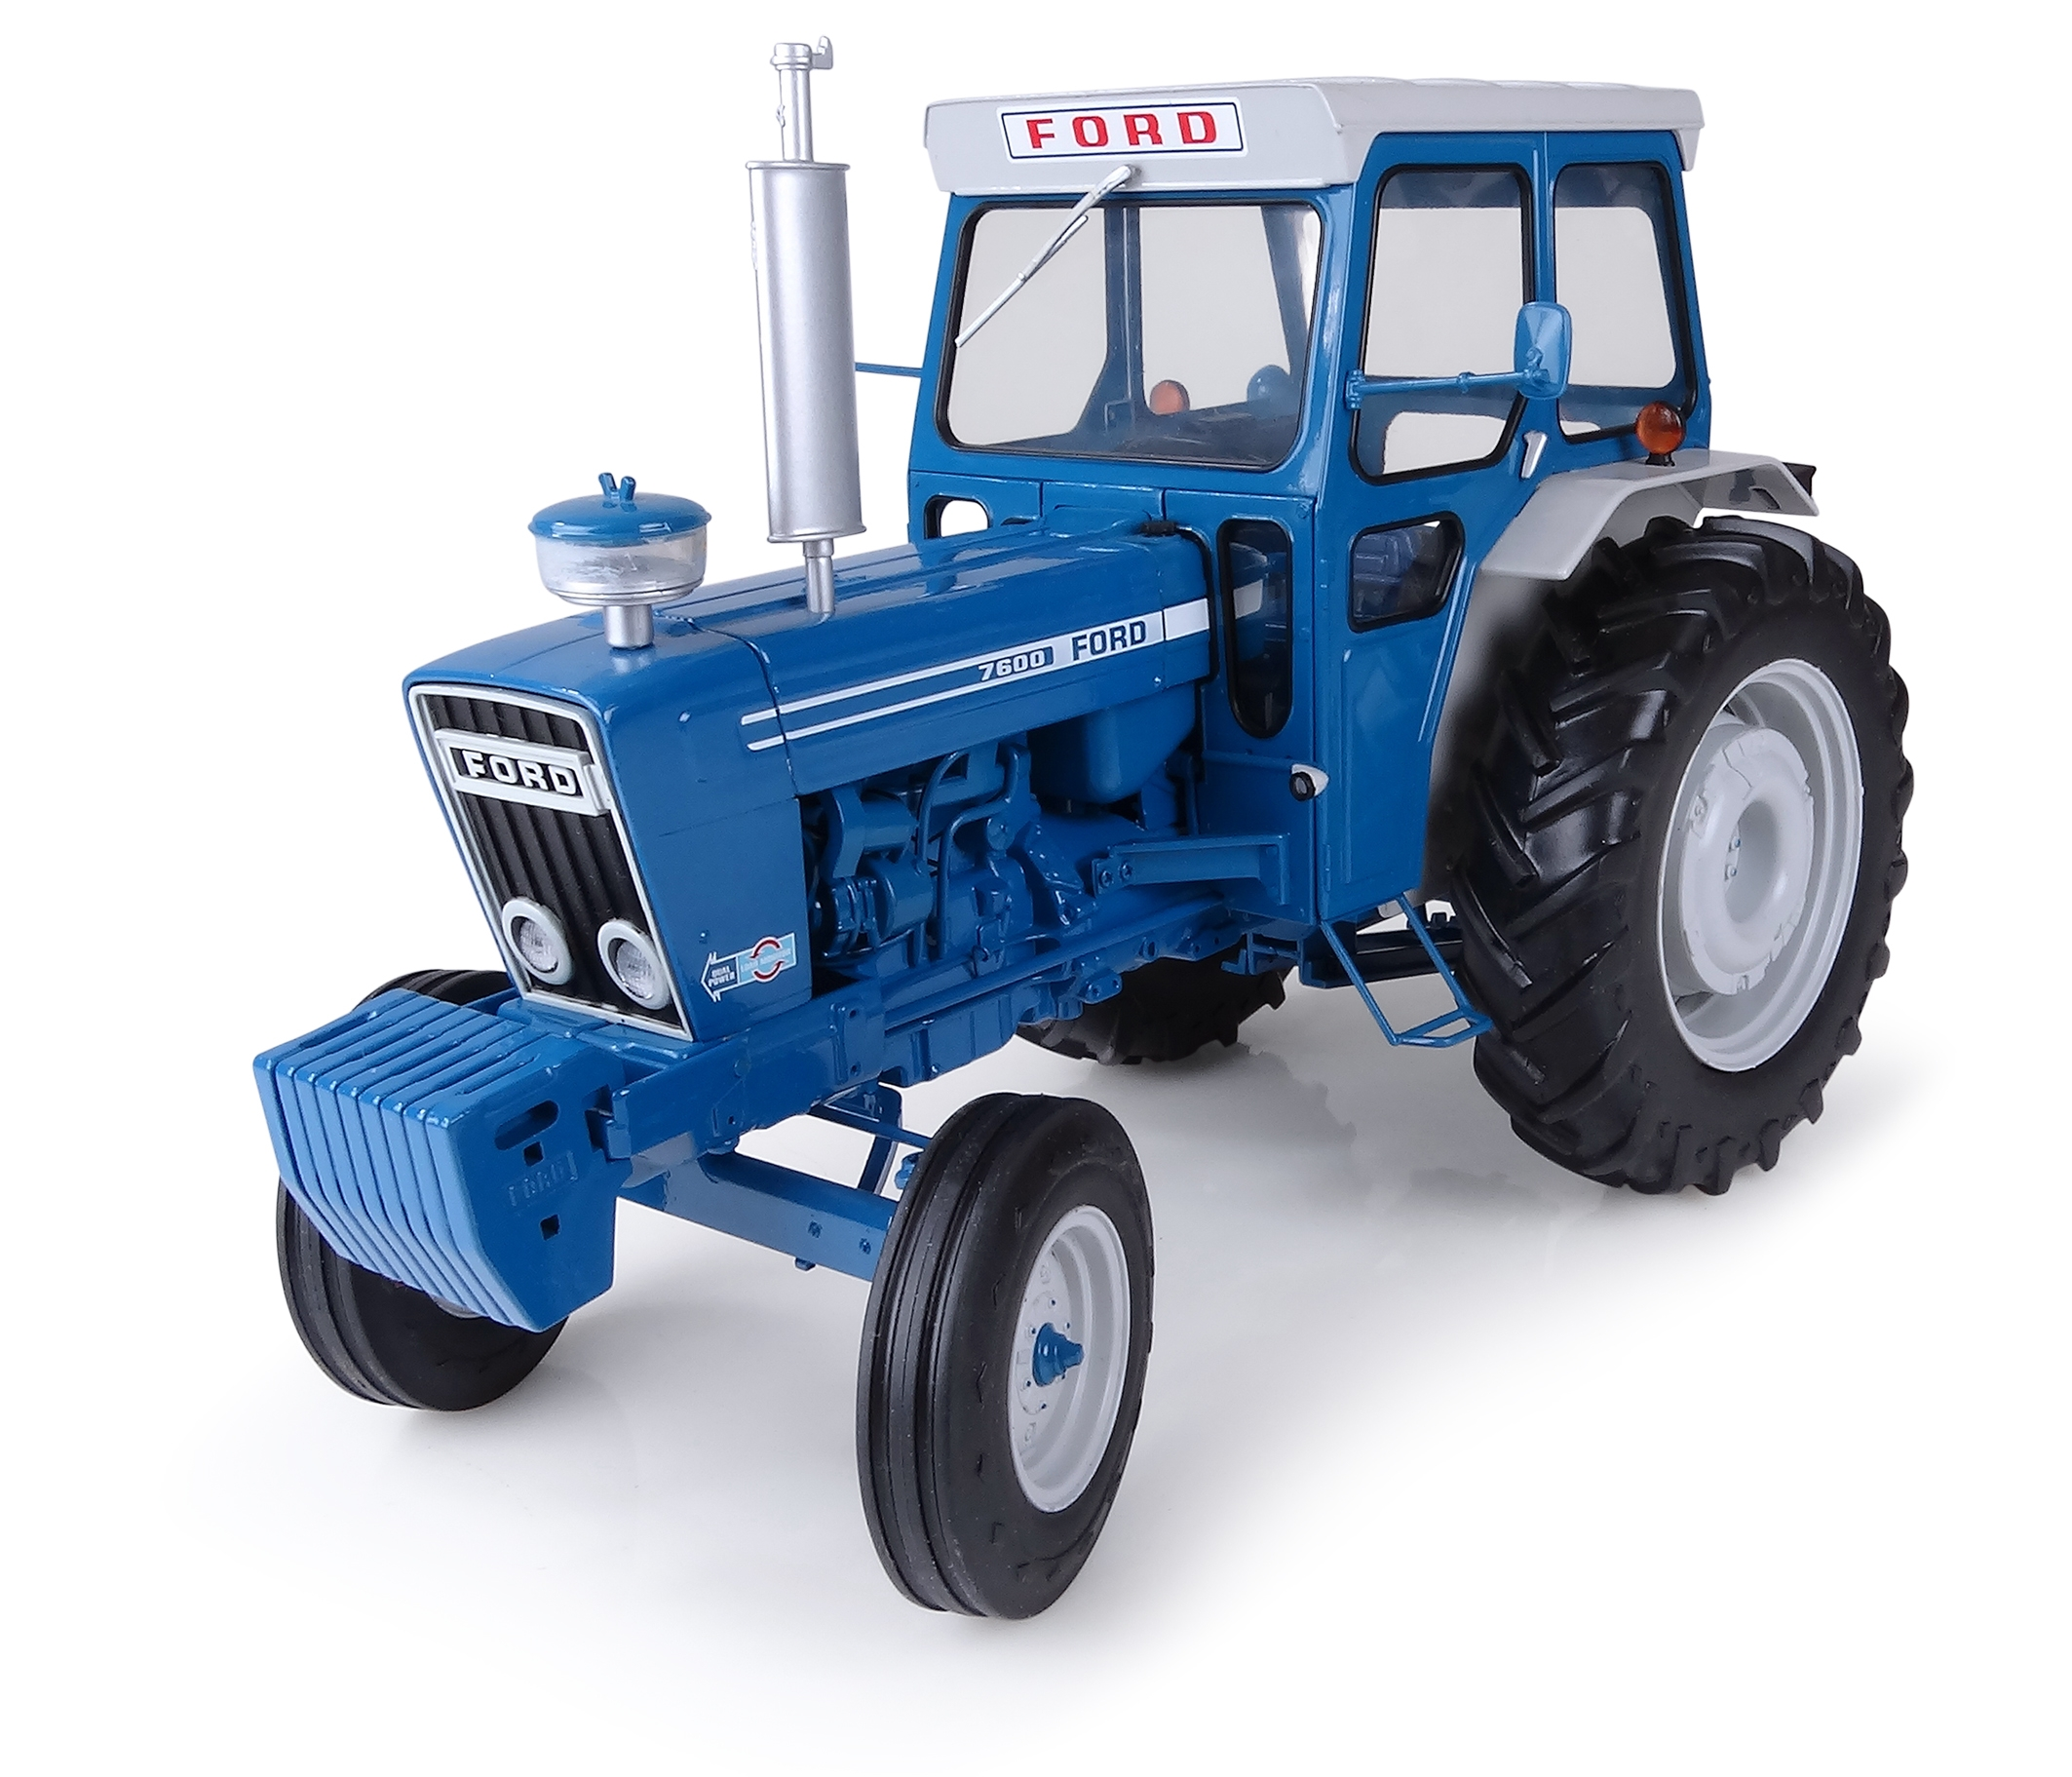 7600 Ford Tractor Parts List : Tractor massey ferguson tea diecast model scale